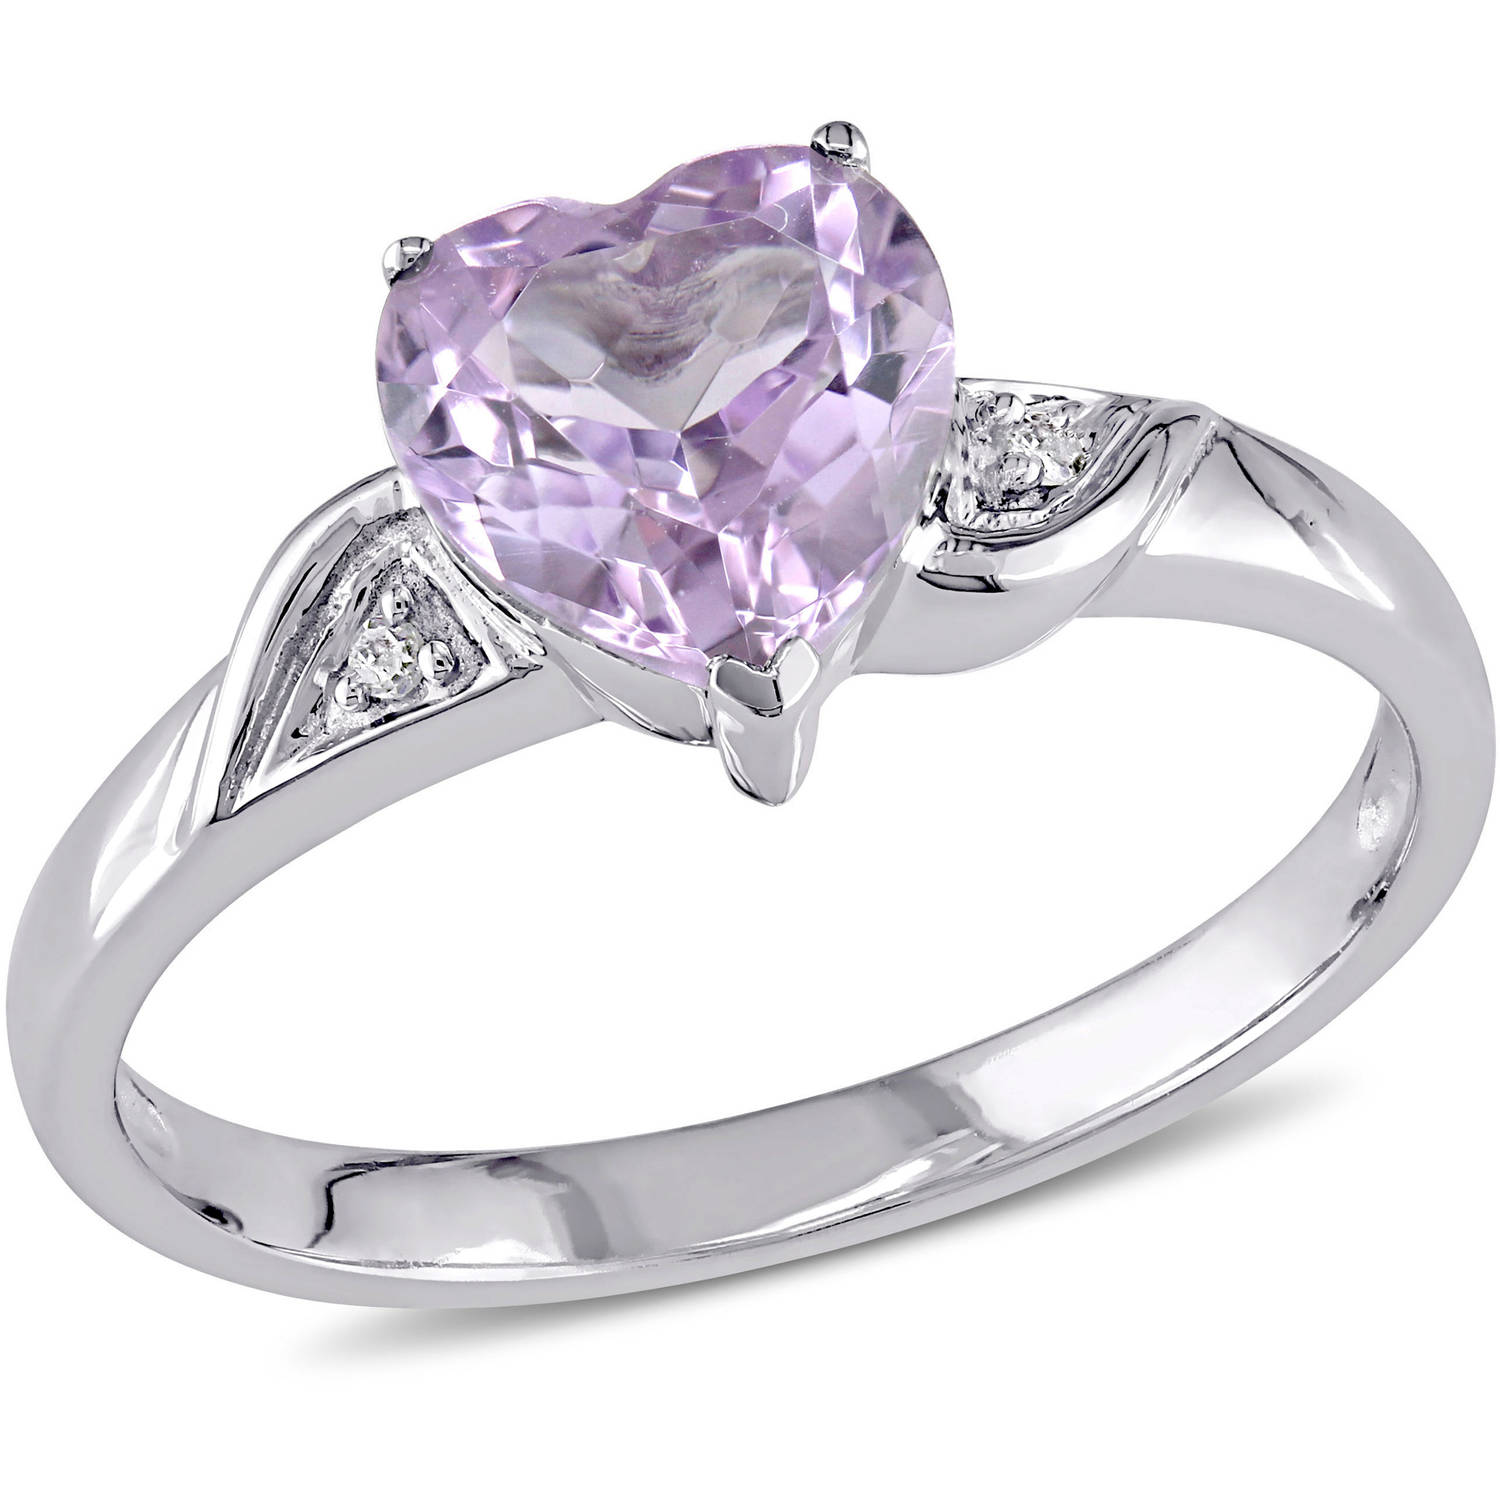 Tangelo 1 Carat T.G.W. Amethyst and Diamond-Accent 10kt White Gold Heart Ring